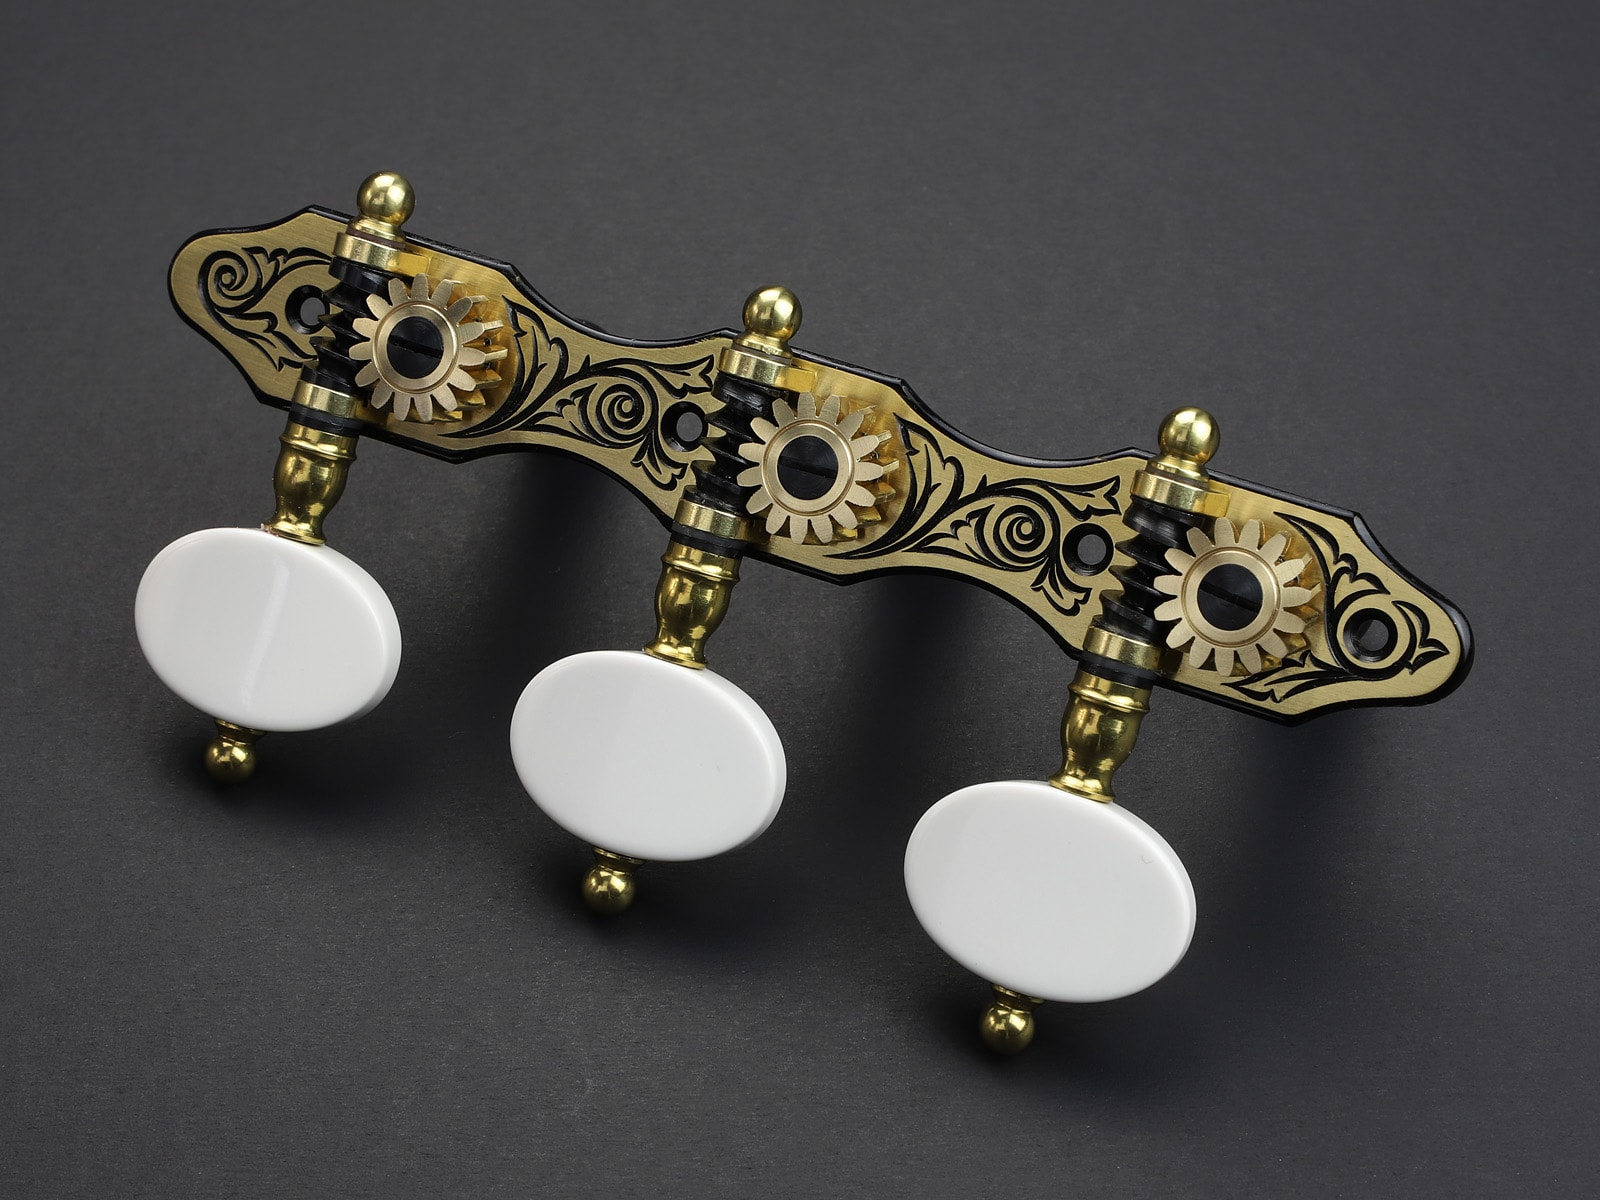 Rodgers Tuners L111 Blackened Brass white stone